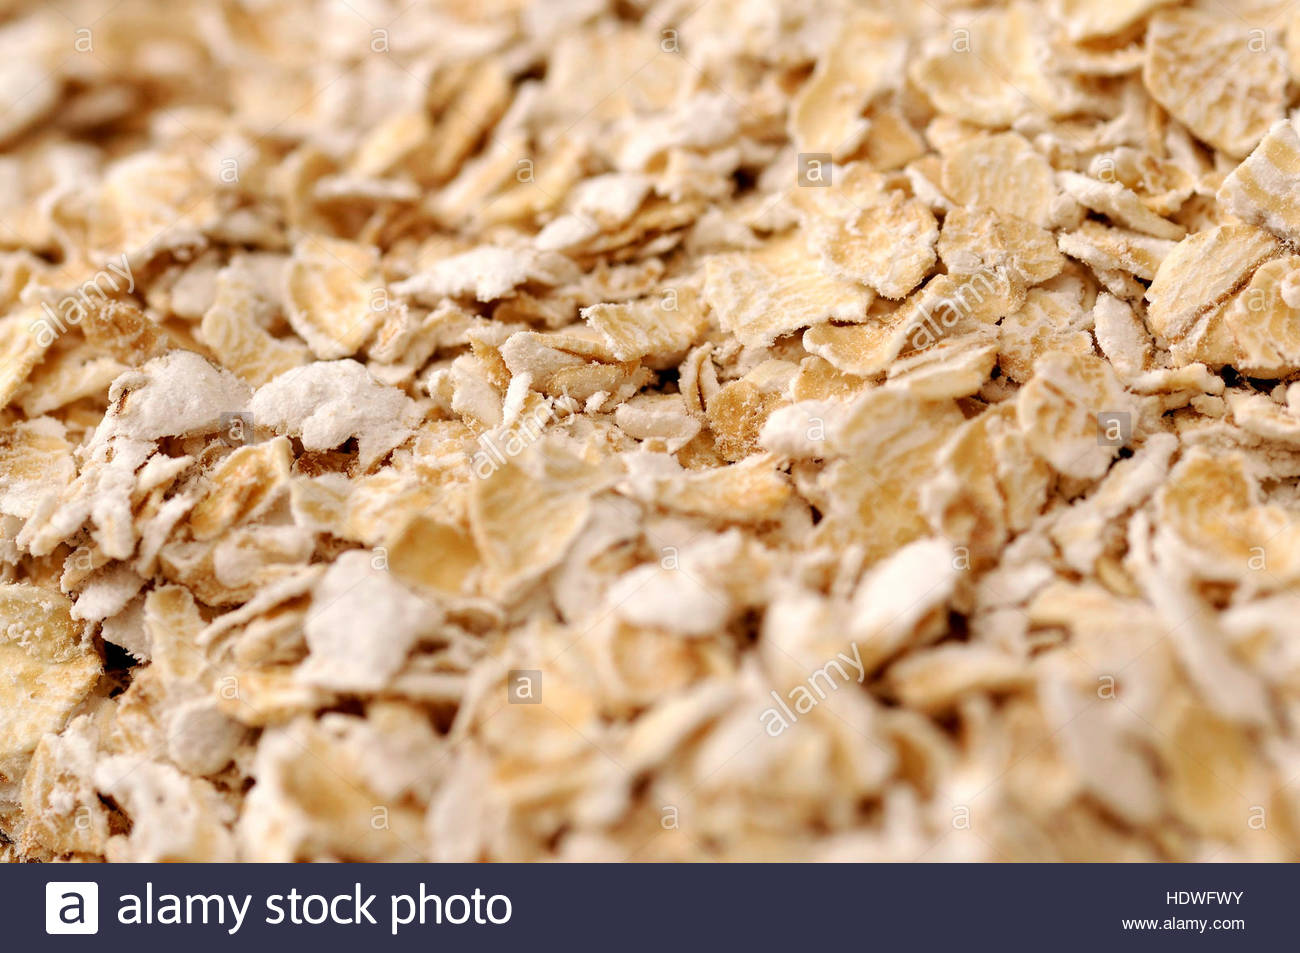 Oatmeal background Good for healthy food concept Stock Photo 1300x953